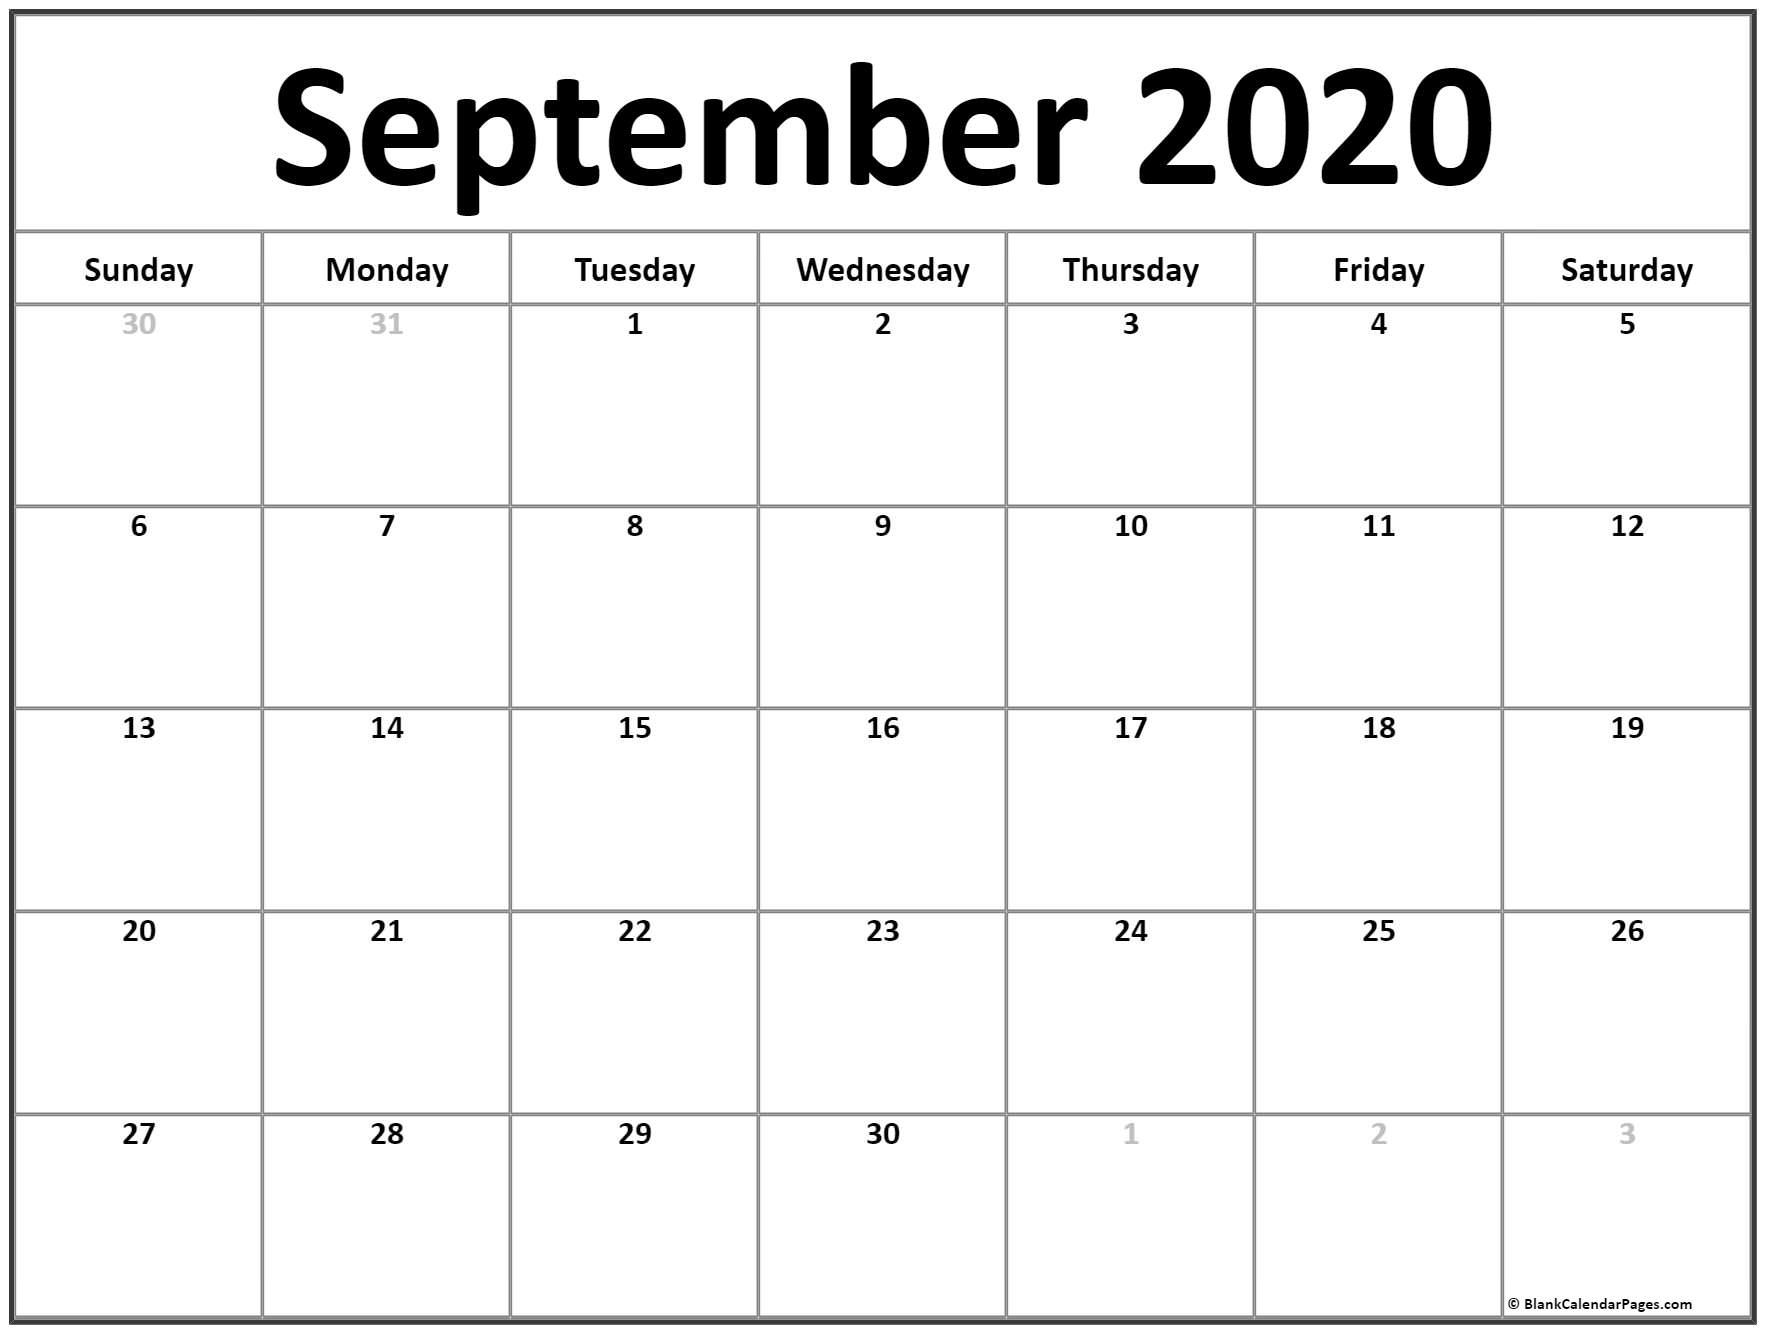 September 2020 Calendar Printable Template With Holidays Monthly